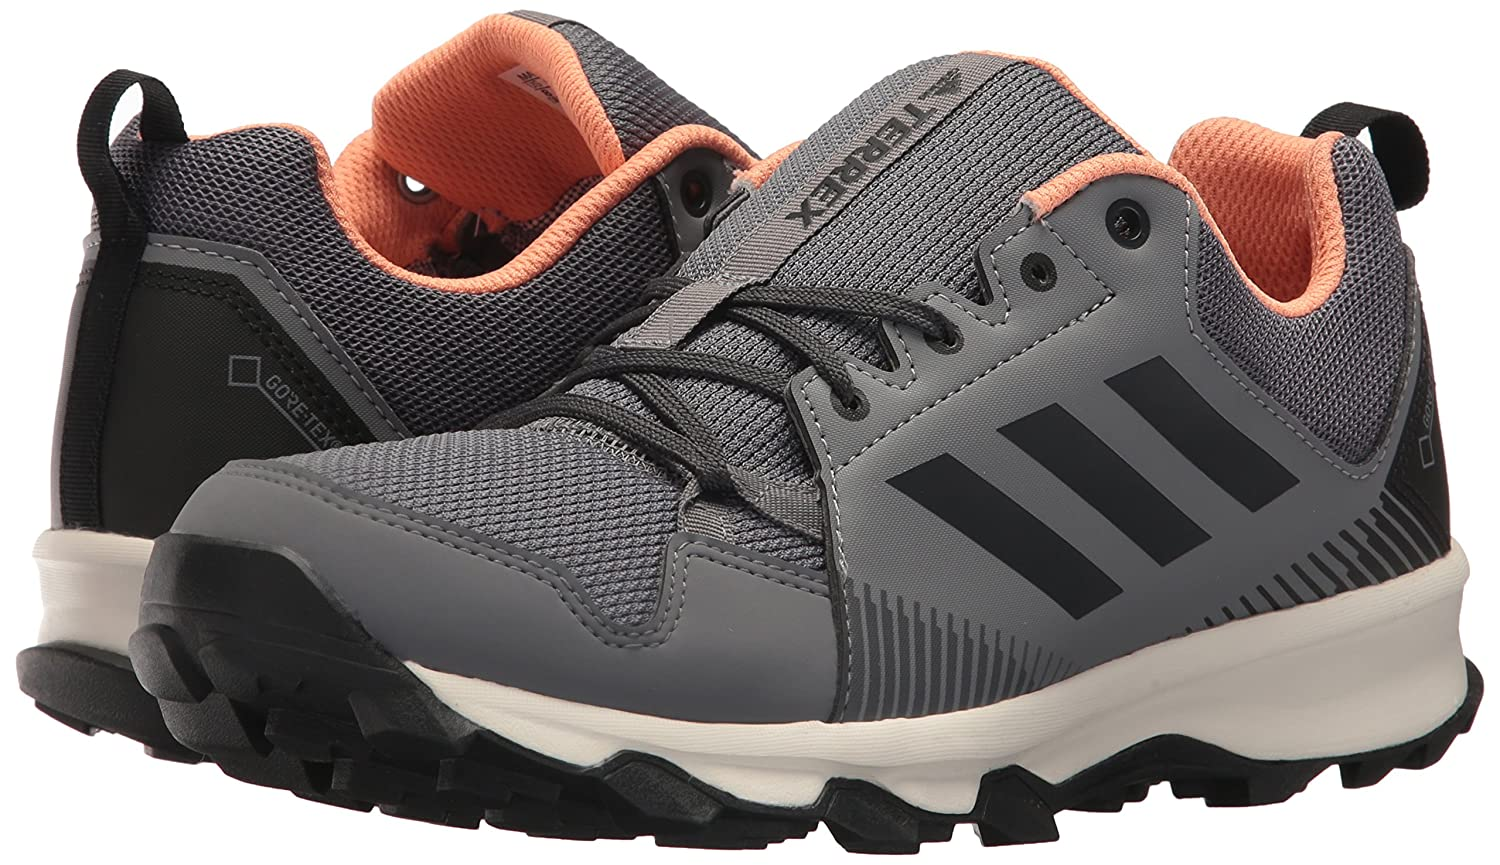 adidas outdoor Women's Terrex Tracerocker GTX B072YWSHSS W Trail Running Shoe B072YWSHSS GTX 8.5 B(M) US|Grey Three/Carbon/Chalk Coral 6212e6